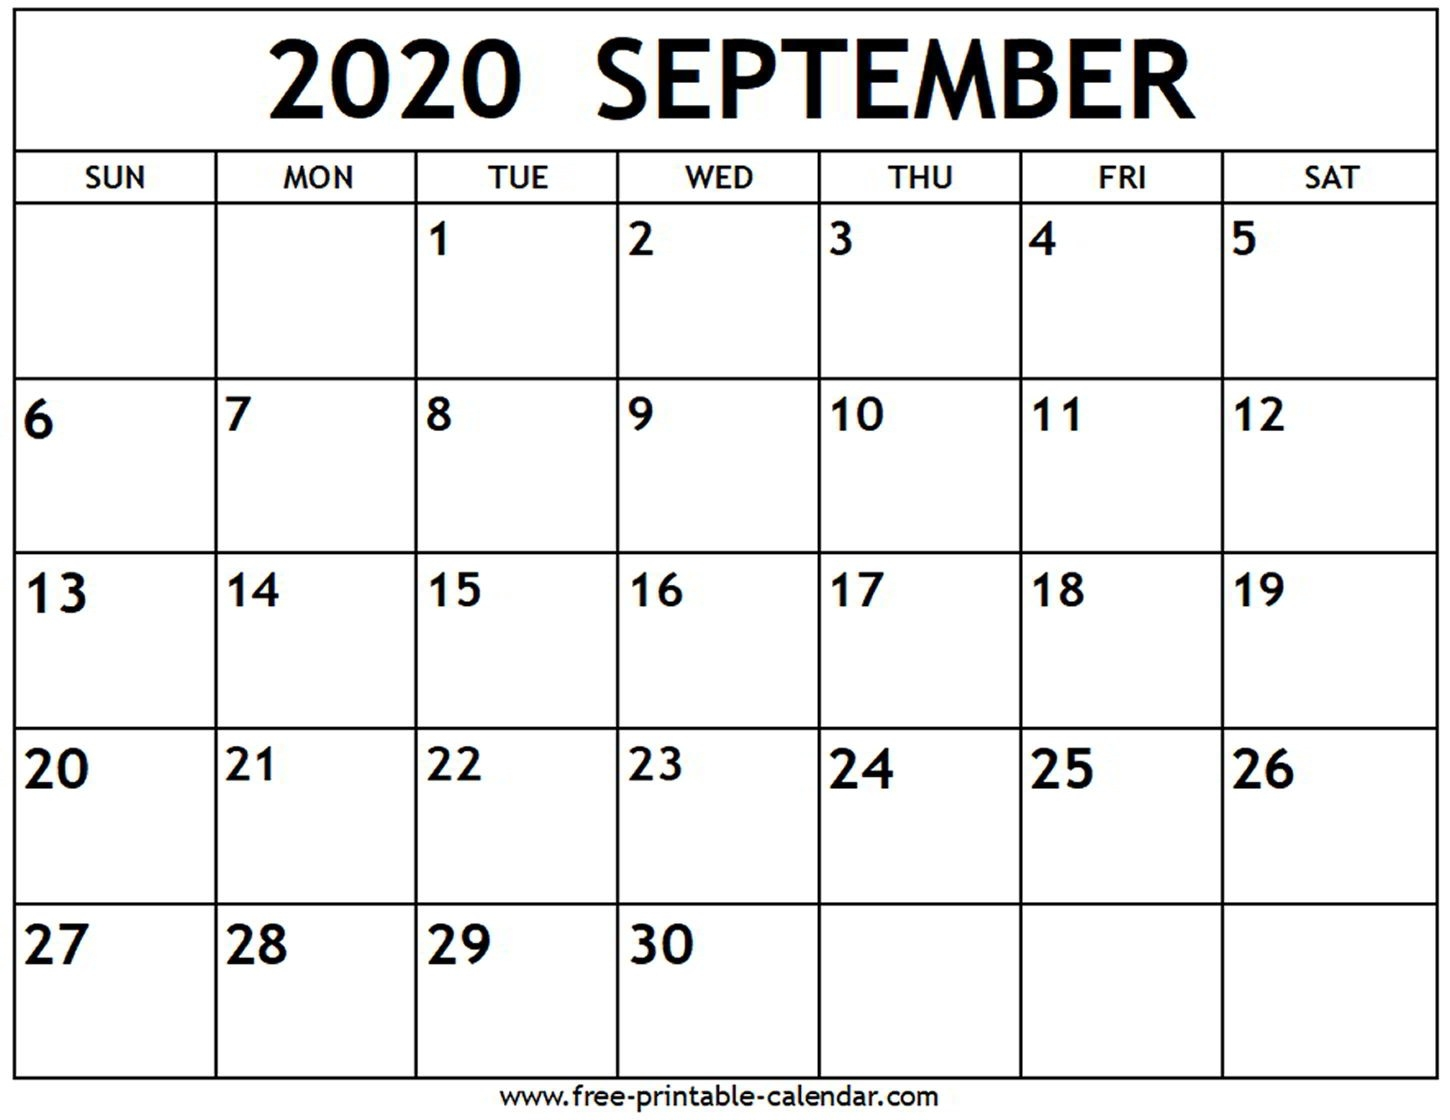 September 2020 Calendar - Free-Printable-Calendar  2020 Calendar September To November